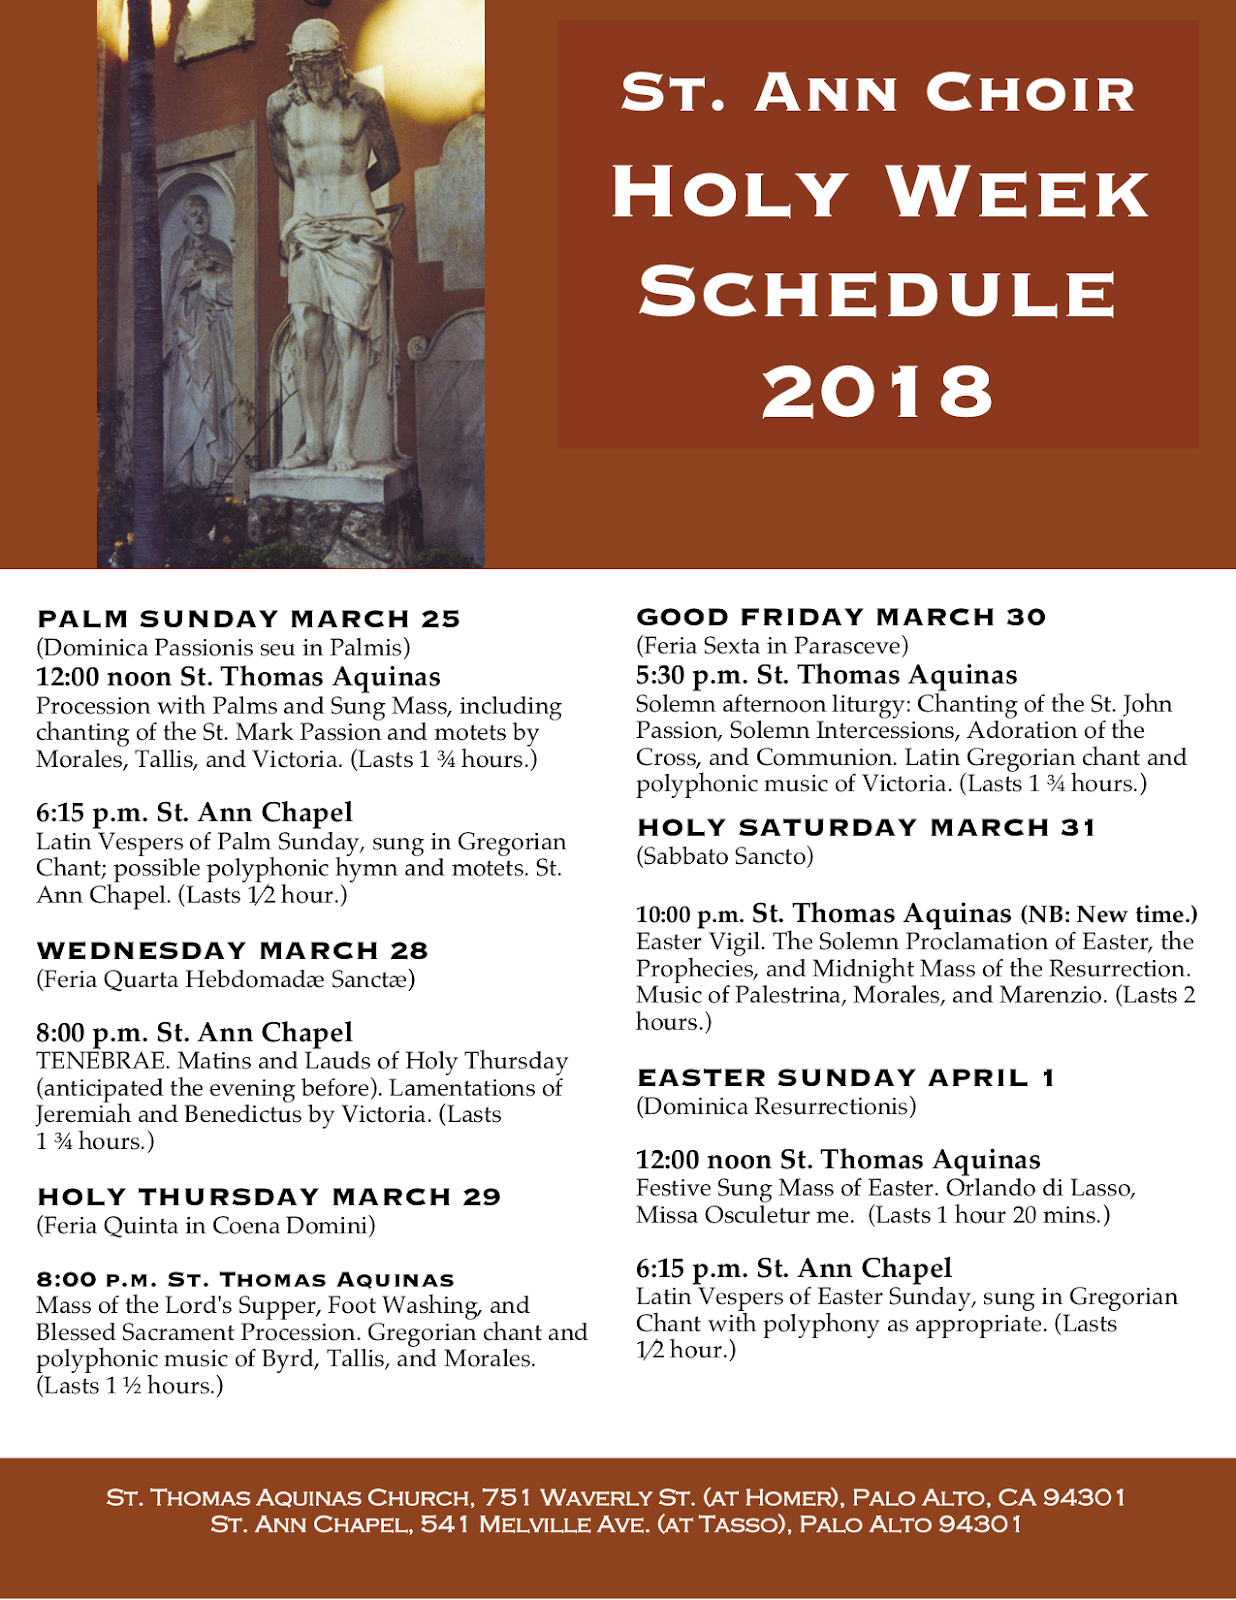 New Liturgical Movement: Holy Week Schedule for the St Ann